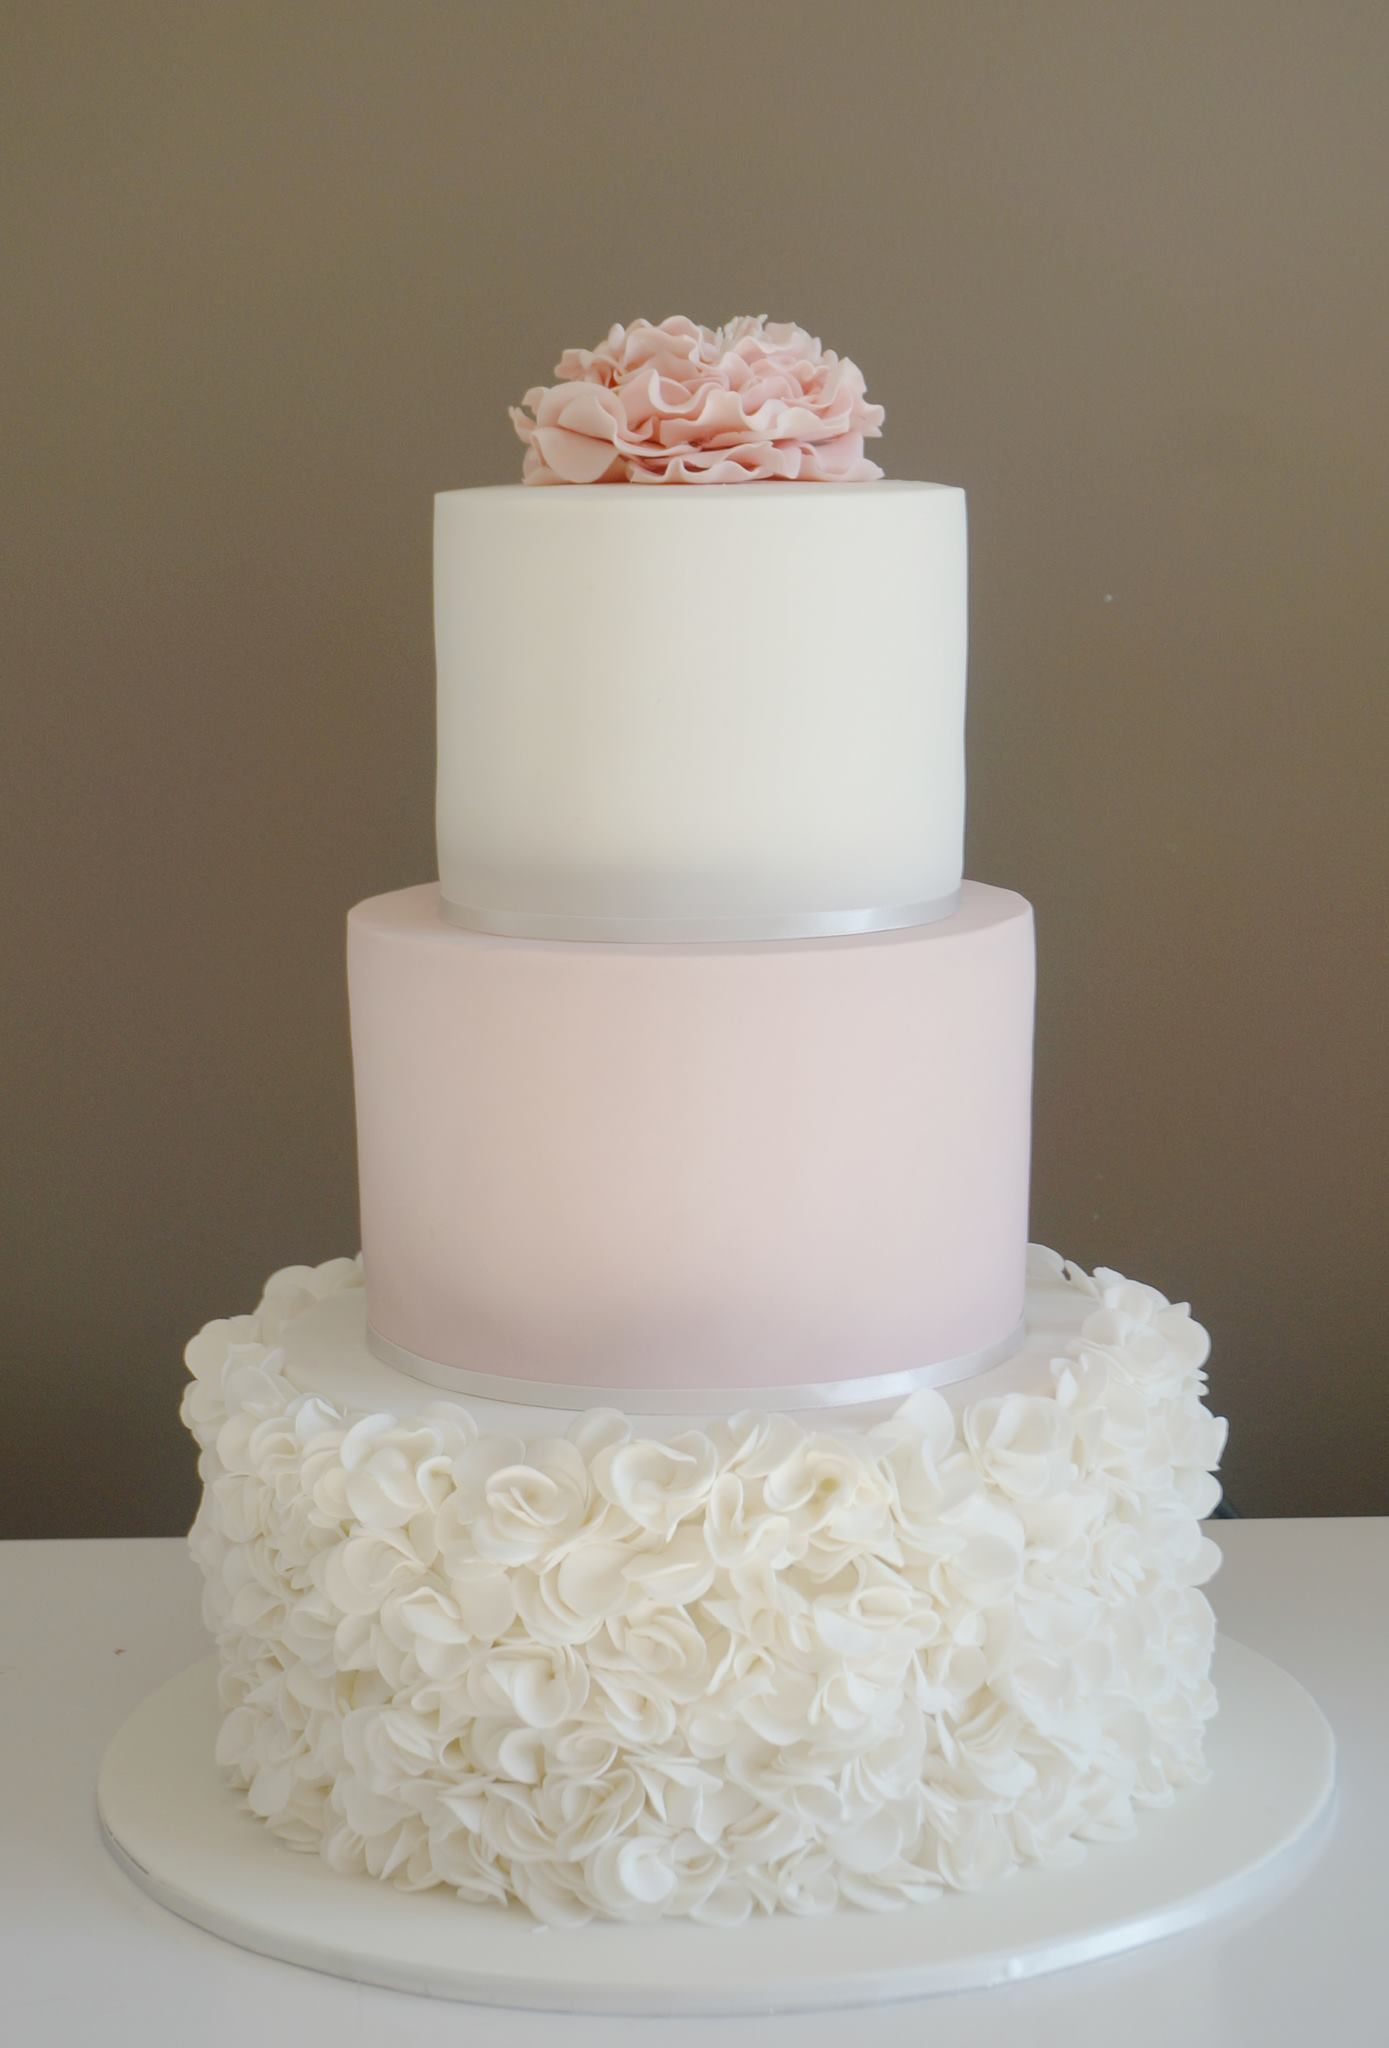 Pink And White Wedding Cake Very Pretty 3 Tier Cake With Ruffle